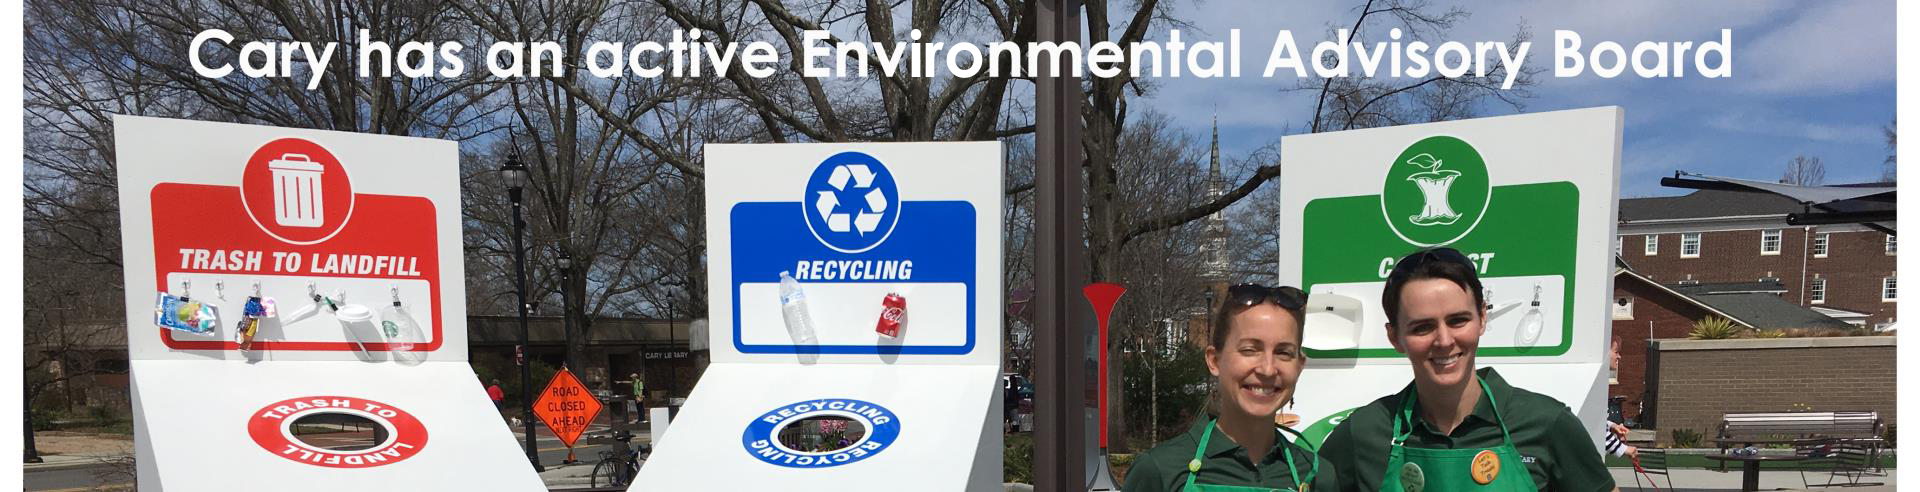 Cary has an active Environmental Advisory Board